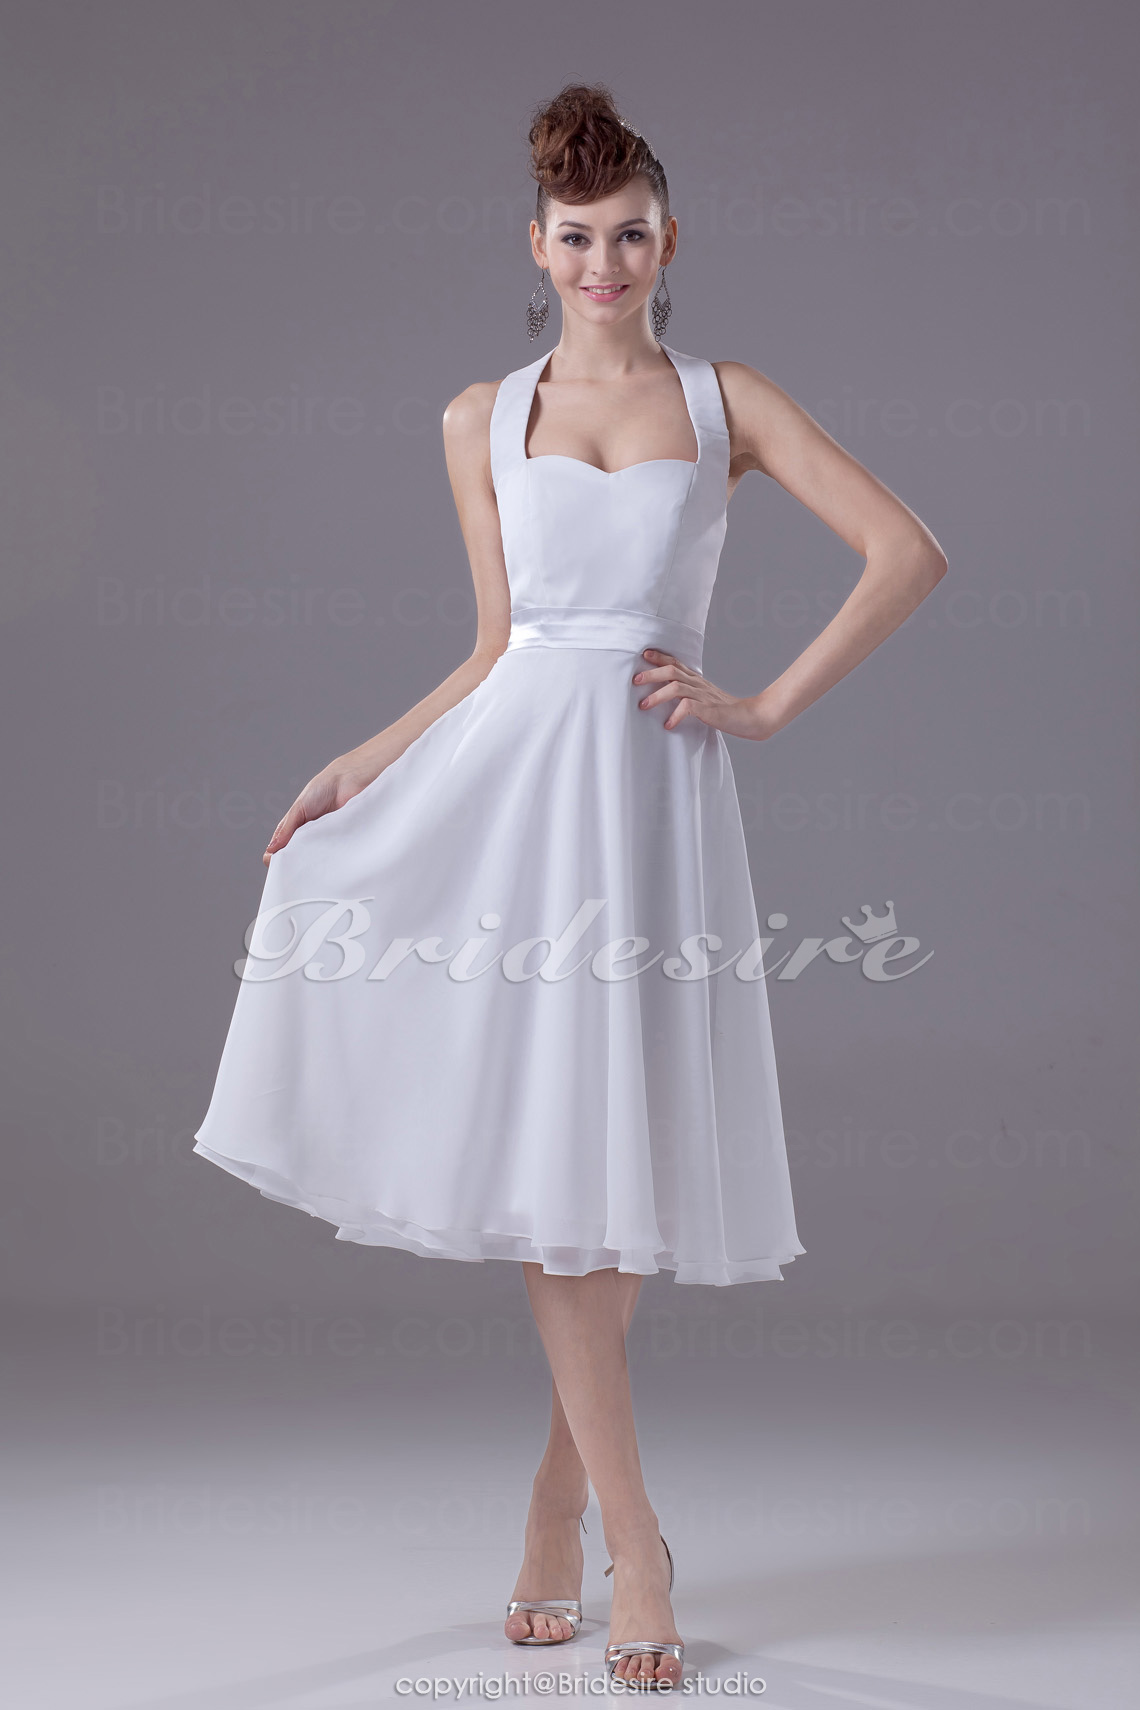 A-line Halter Sweetheart Knee-length Sleeveless Chiffon Dress